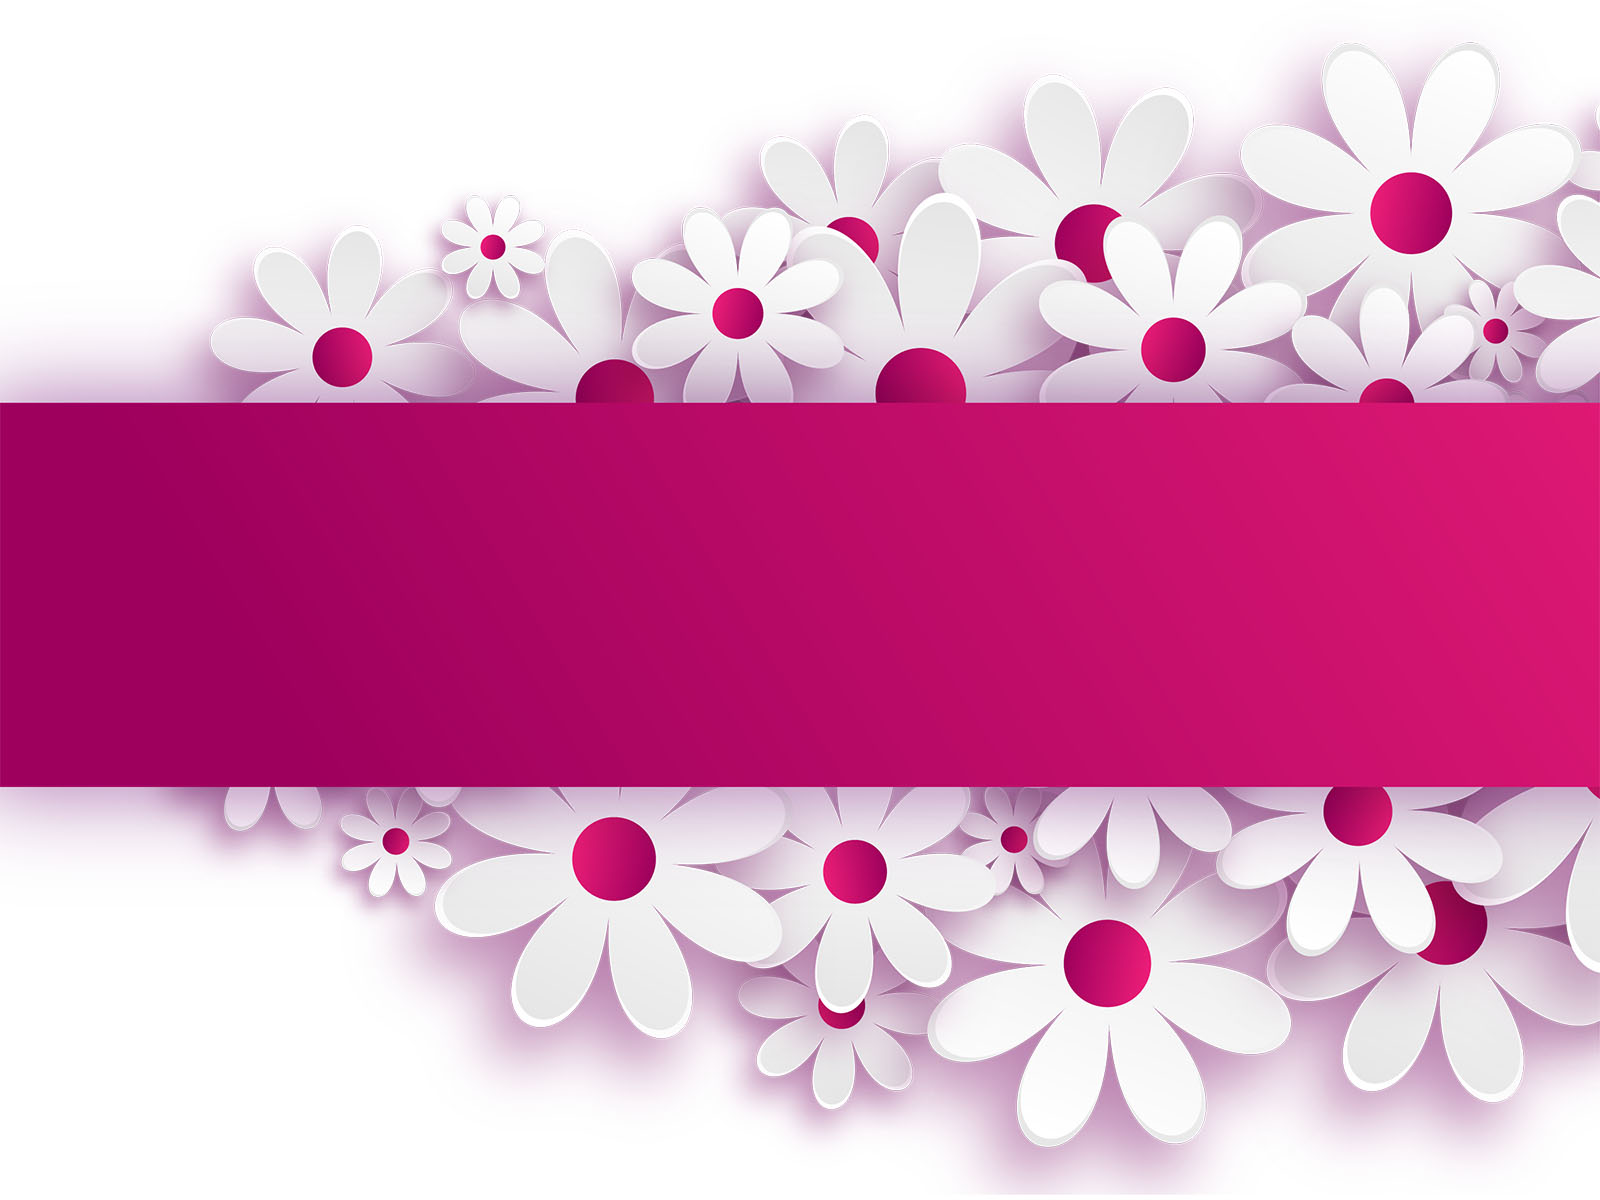 signboard flower backgrounds for powerpoint templates - ppt, Modern powerpoint